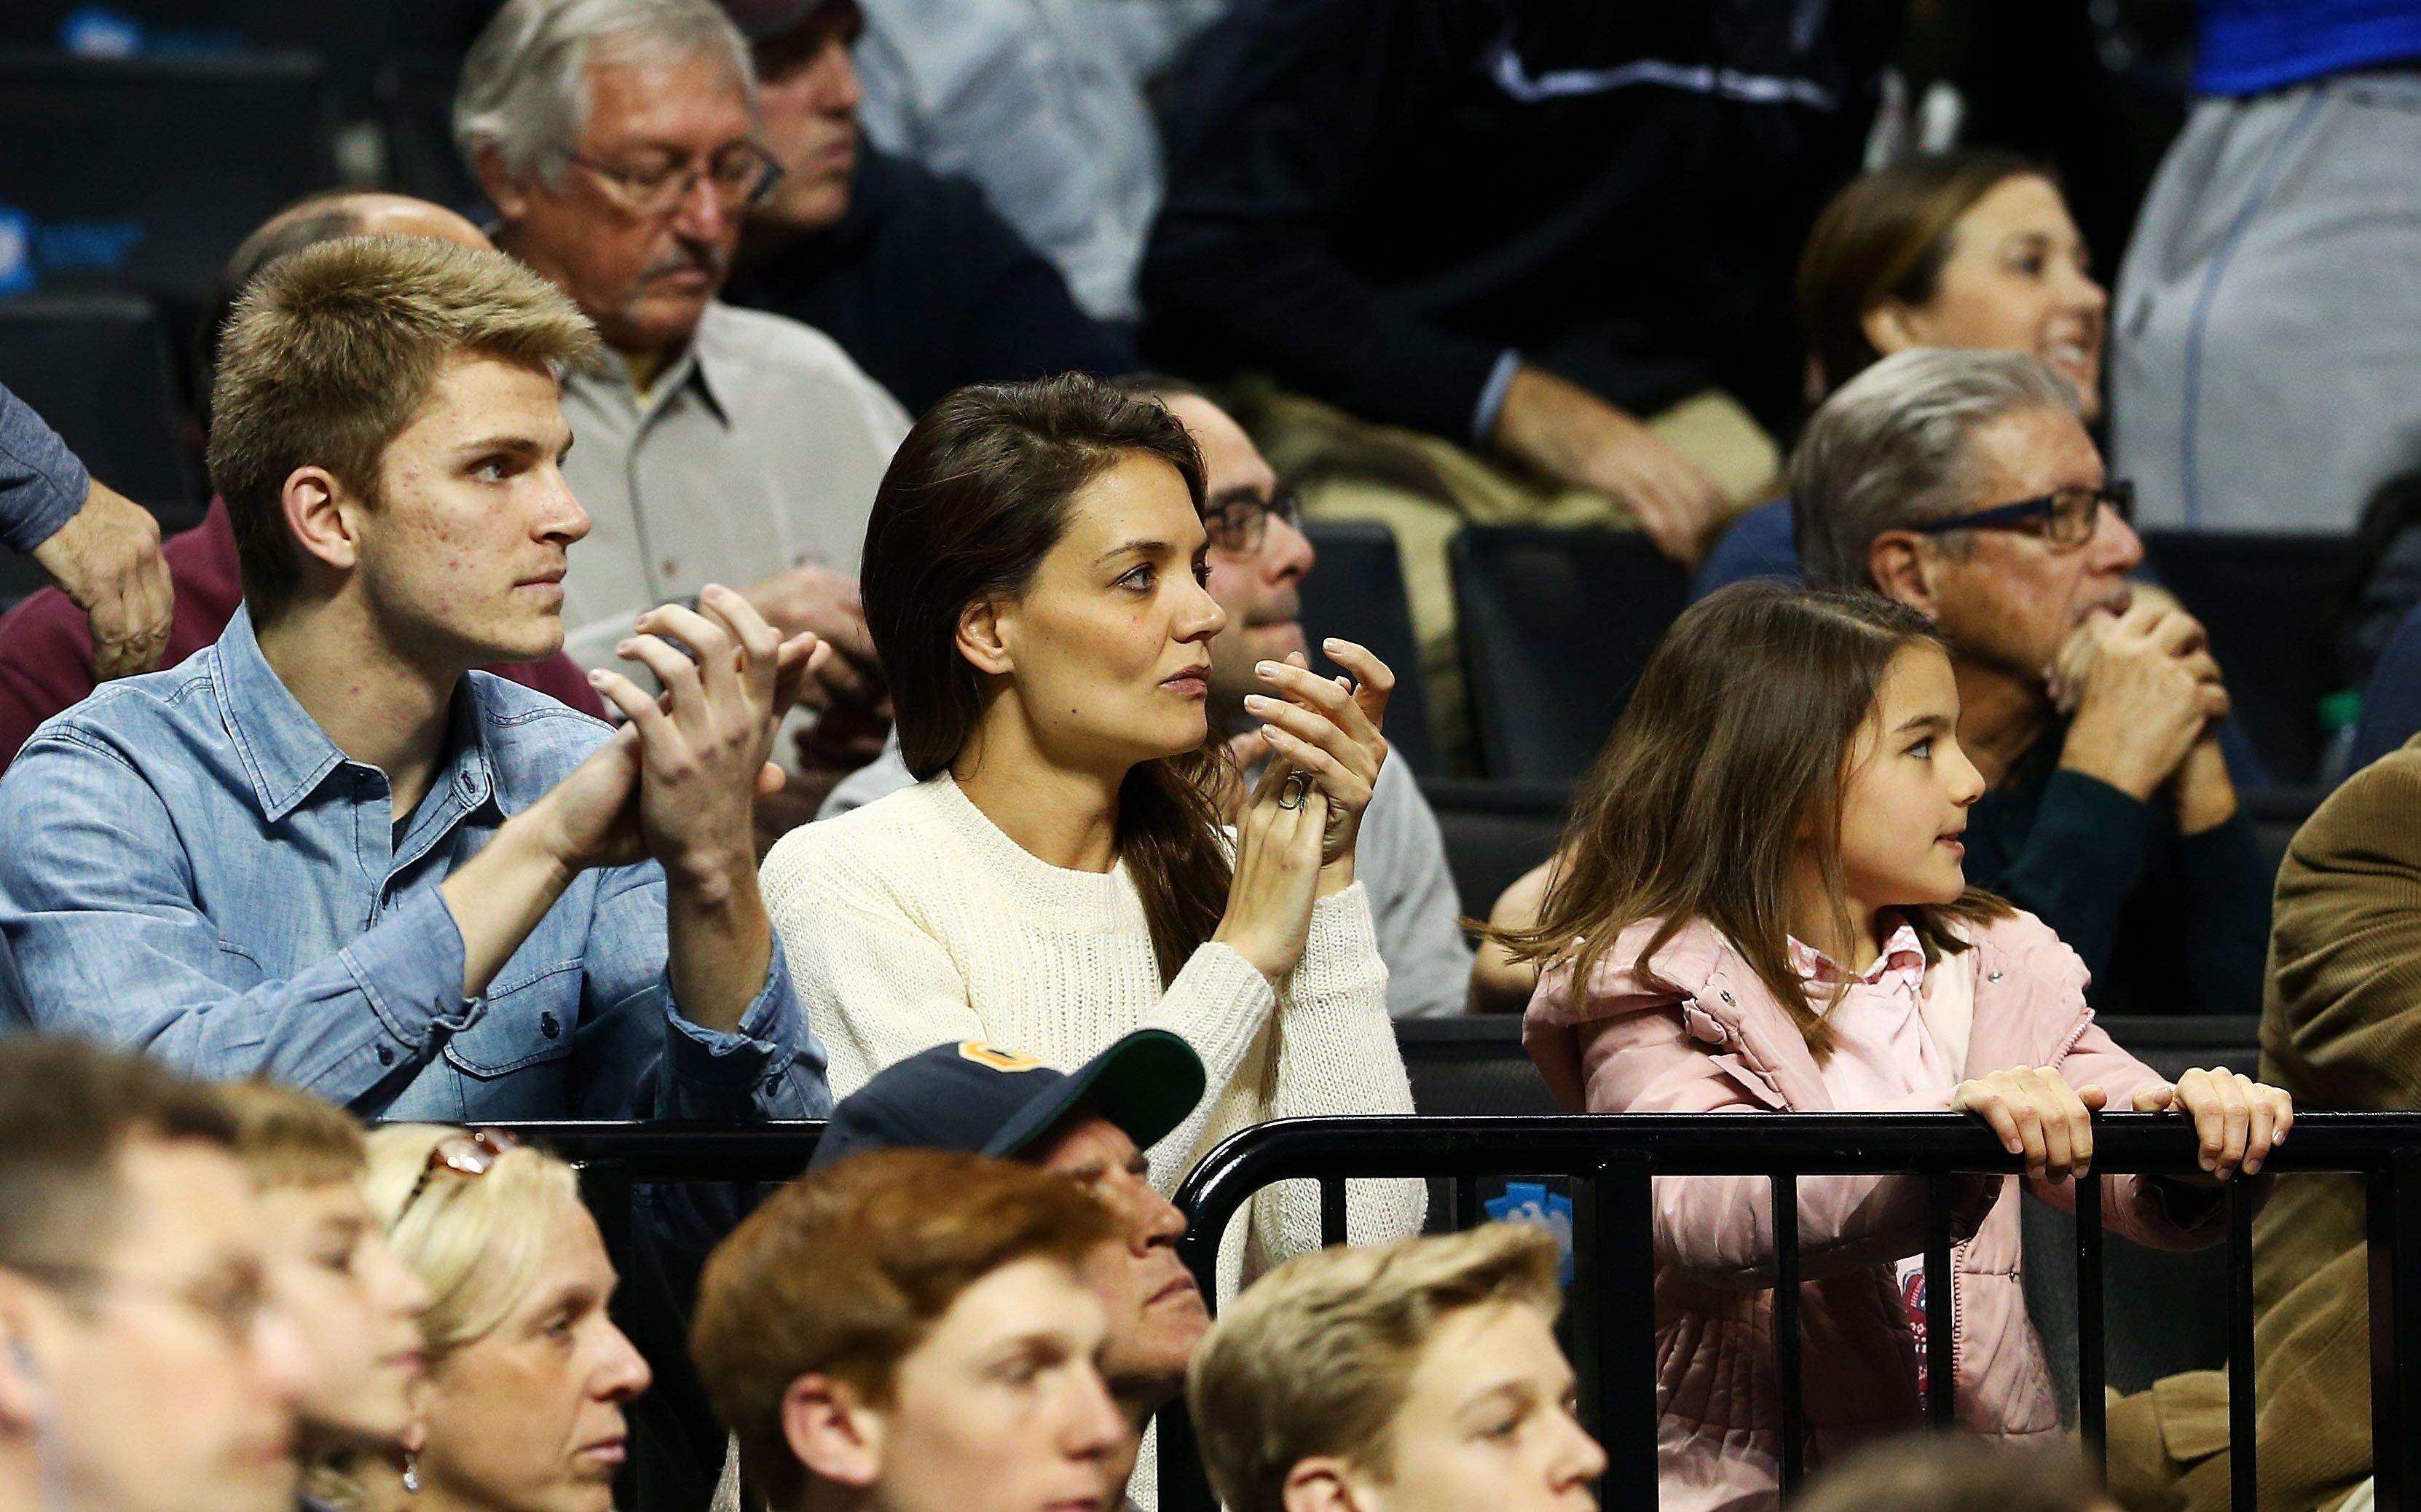 NEW YORK, NY - MARCH 20:  Actress Katie Homes and her daughter Suri Cruise attend the game between the Stephen F. Austin Lumberjacks and the Notre Dame Fighting Irish during the second round of the 2016 NCAA Men's Basketball Tournament at Barclays Center on March 20, 2016 in the Brooklyn borough of New York City.  (Photo by Elsa/Getty Images)